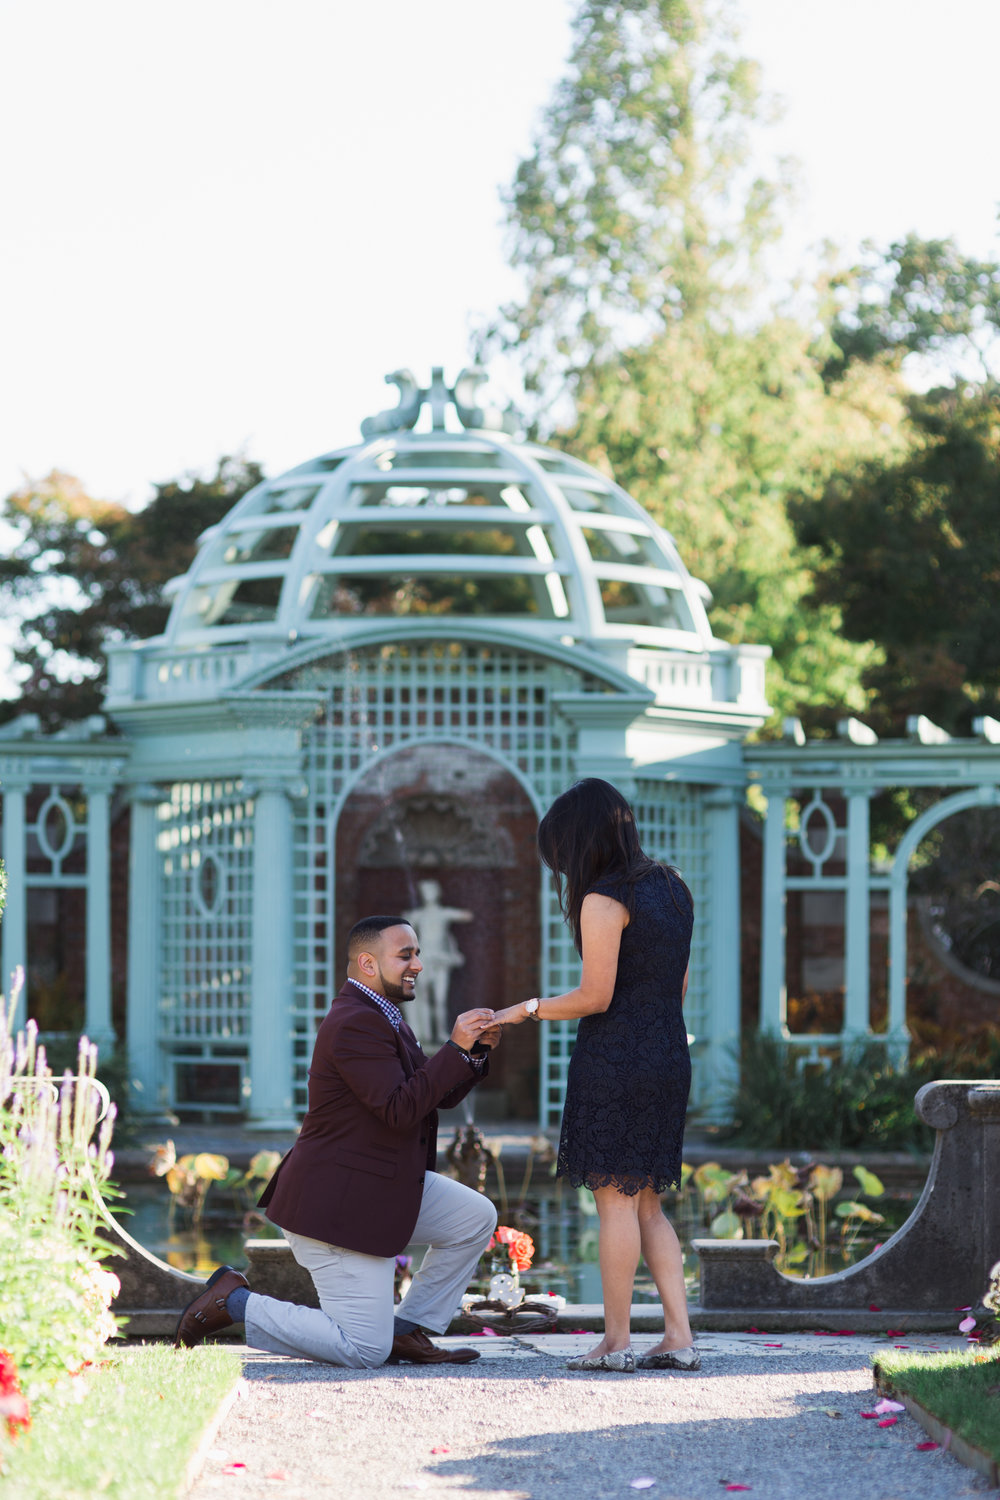 sharon-reuben-proposal-0009.jpg